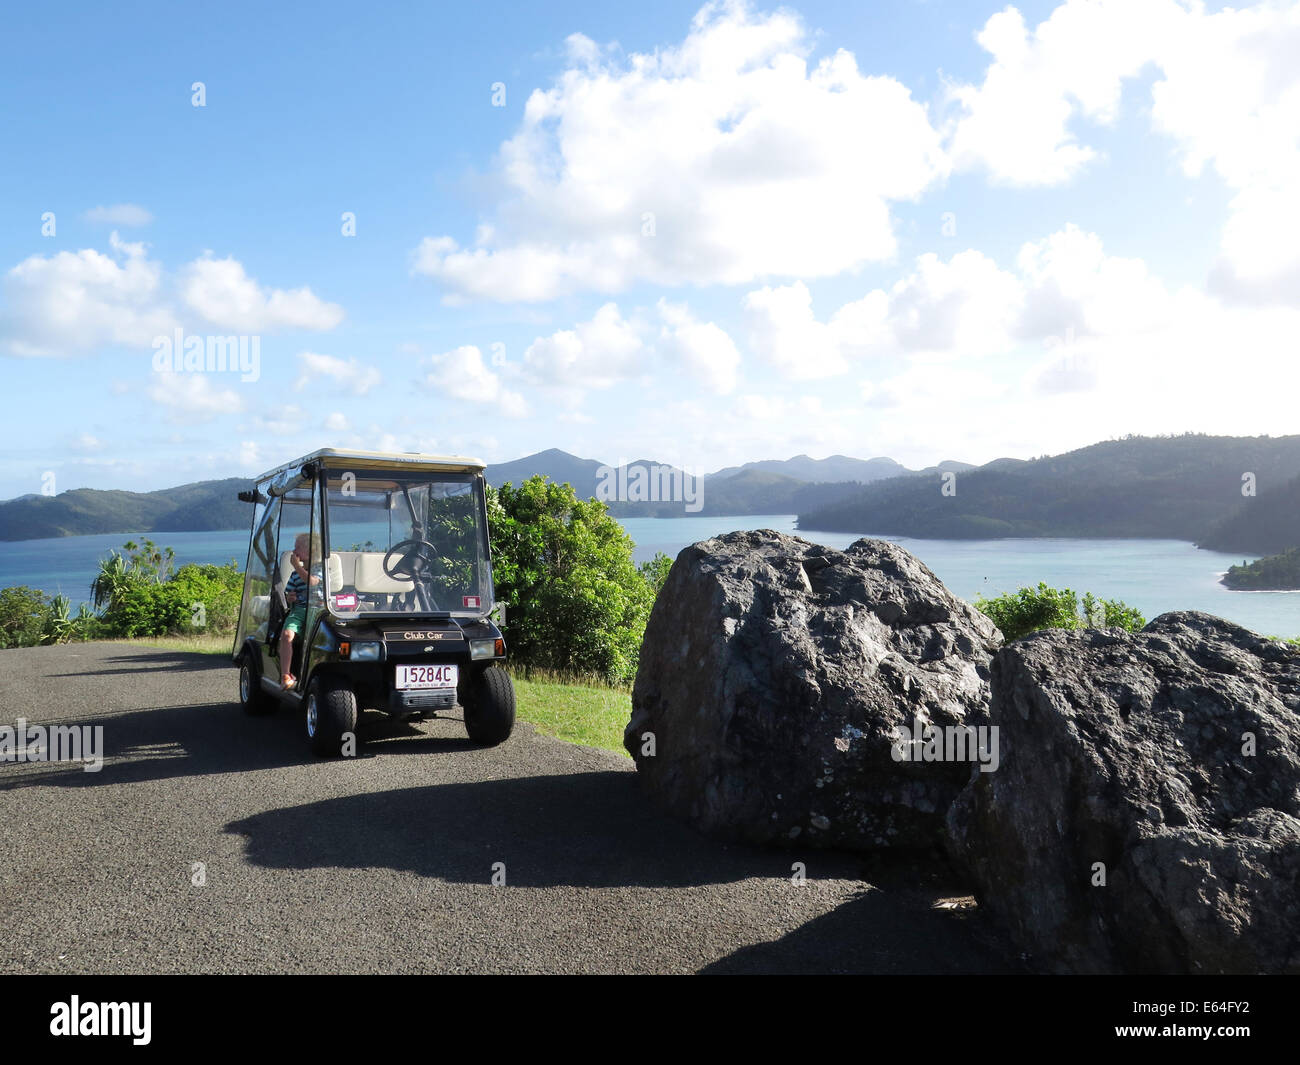 Golf Buggy at One Tree Hill, Hamilton Island in the Whitsunday Islands, Australia. - Stock Image